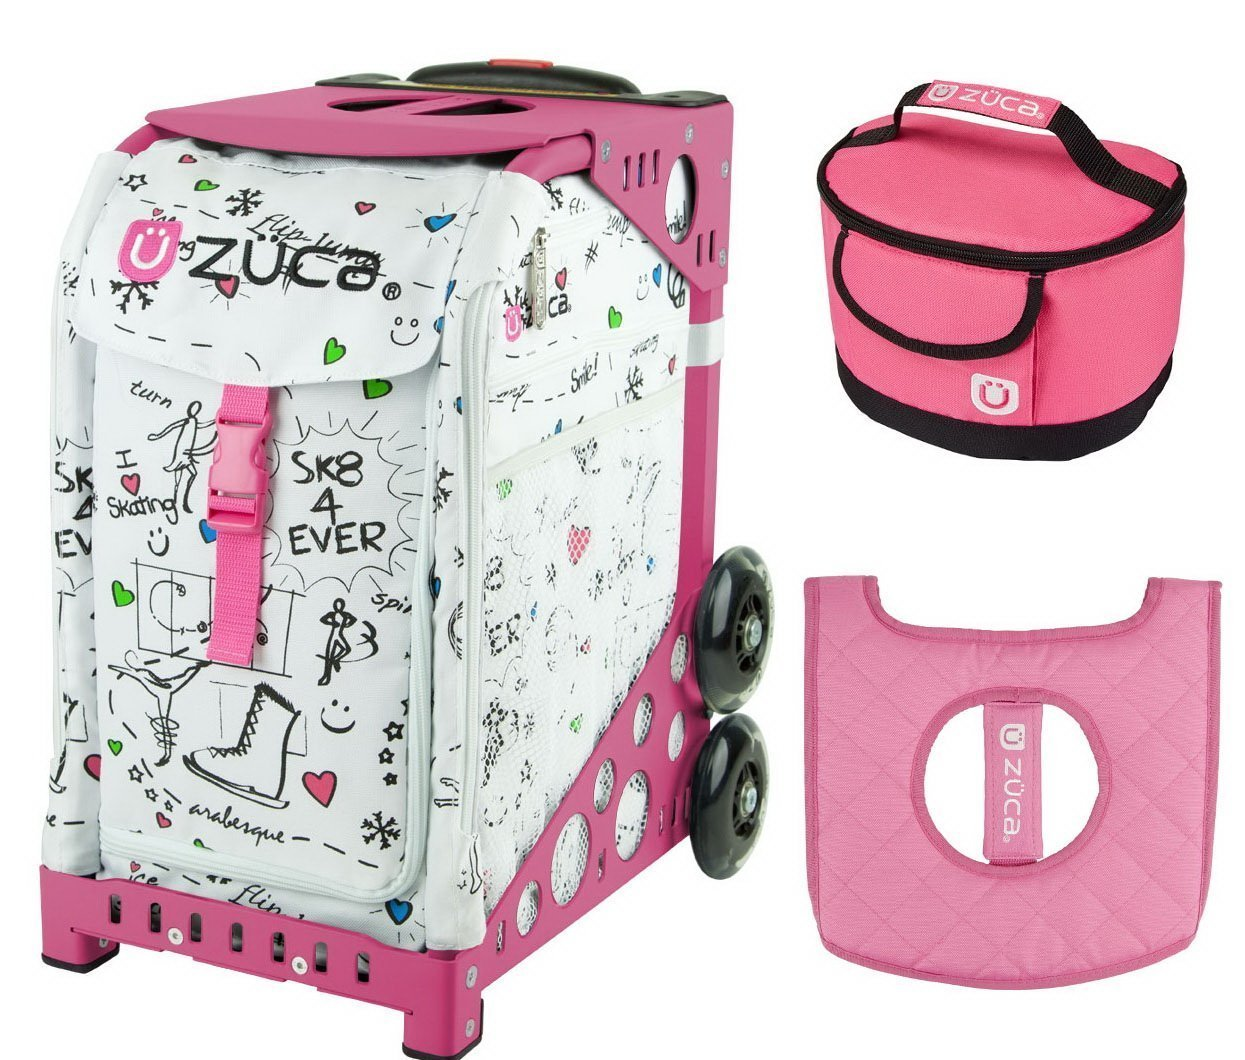 Zuca Sport Bag - SK8 with Gift Lunchbox and Seat Cover (Pink Frame)